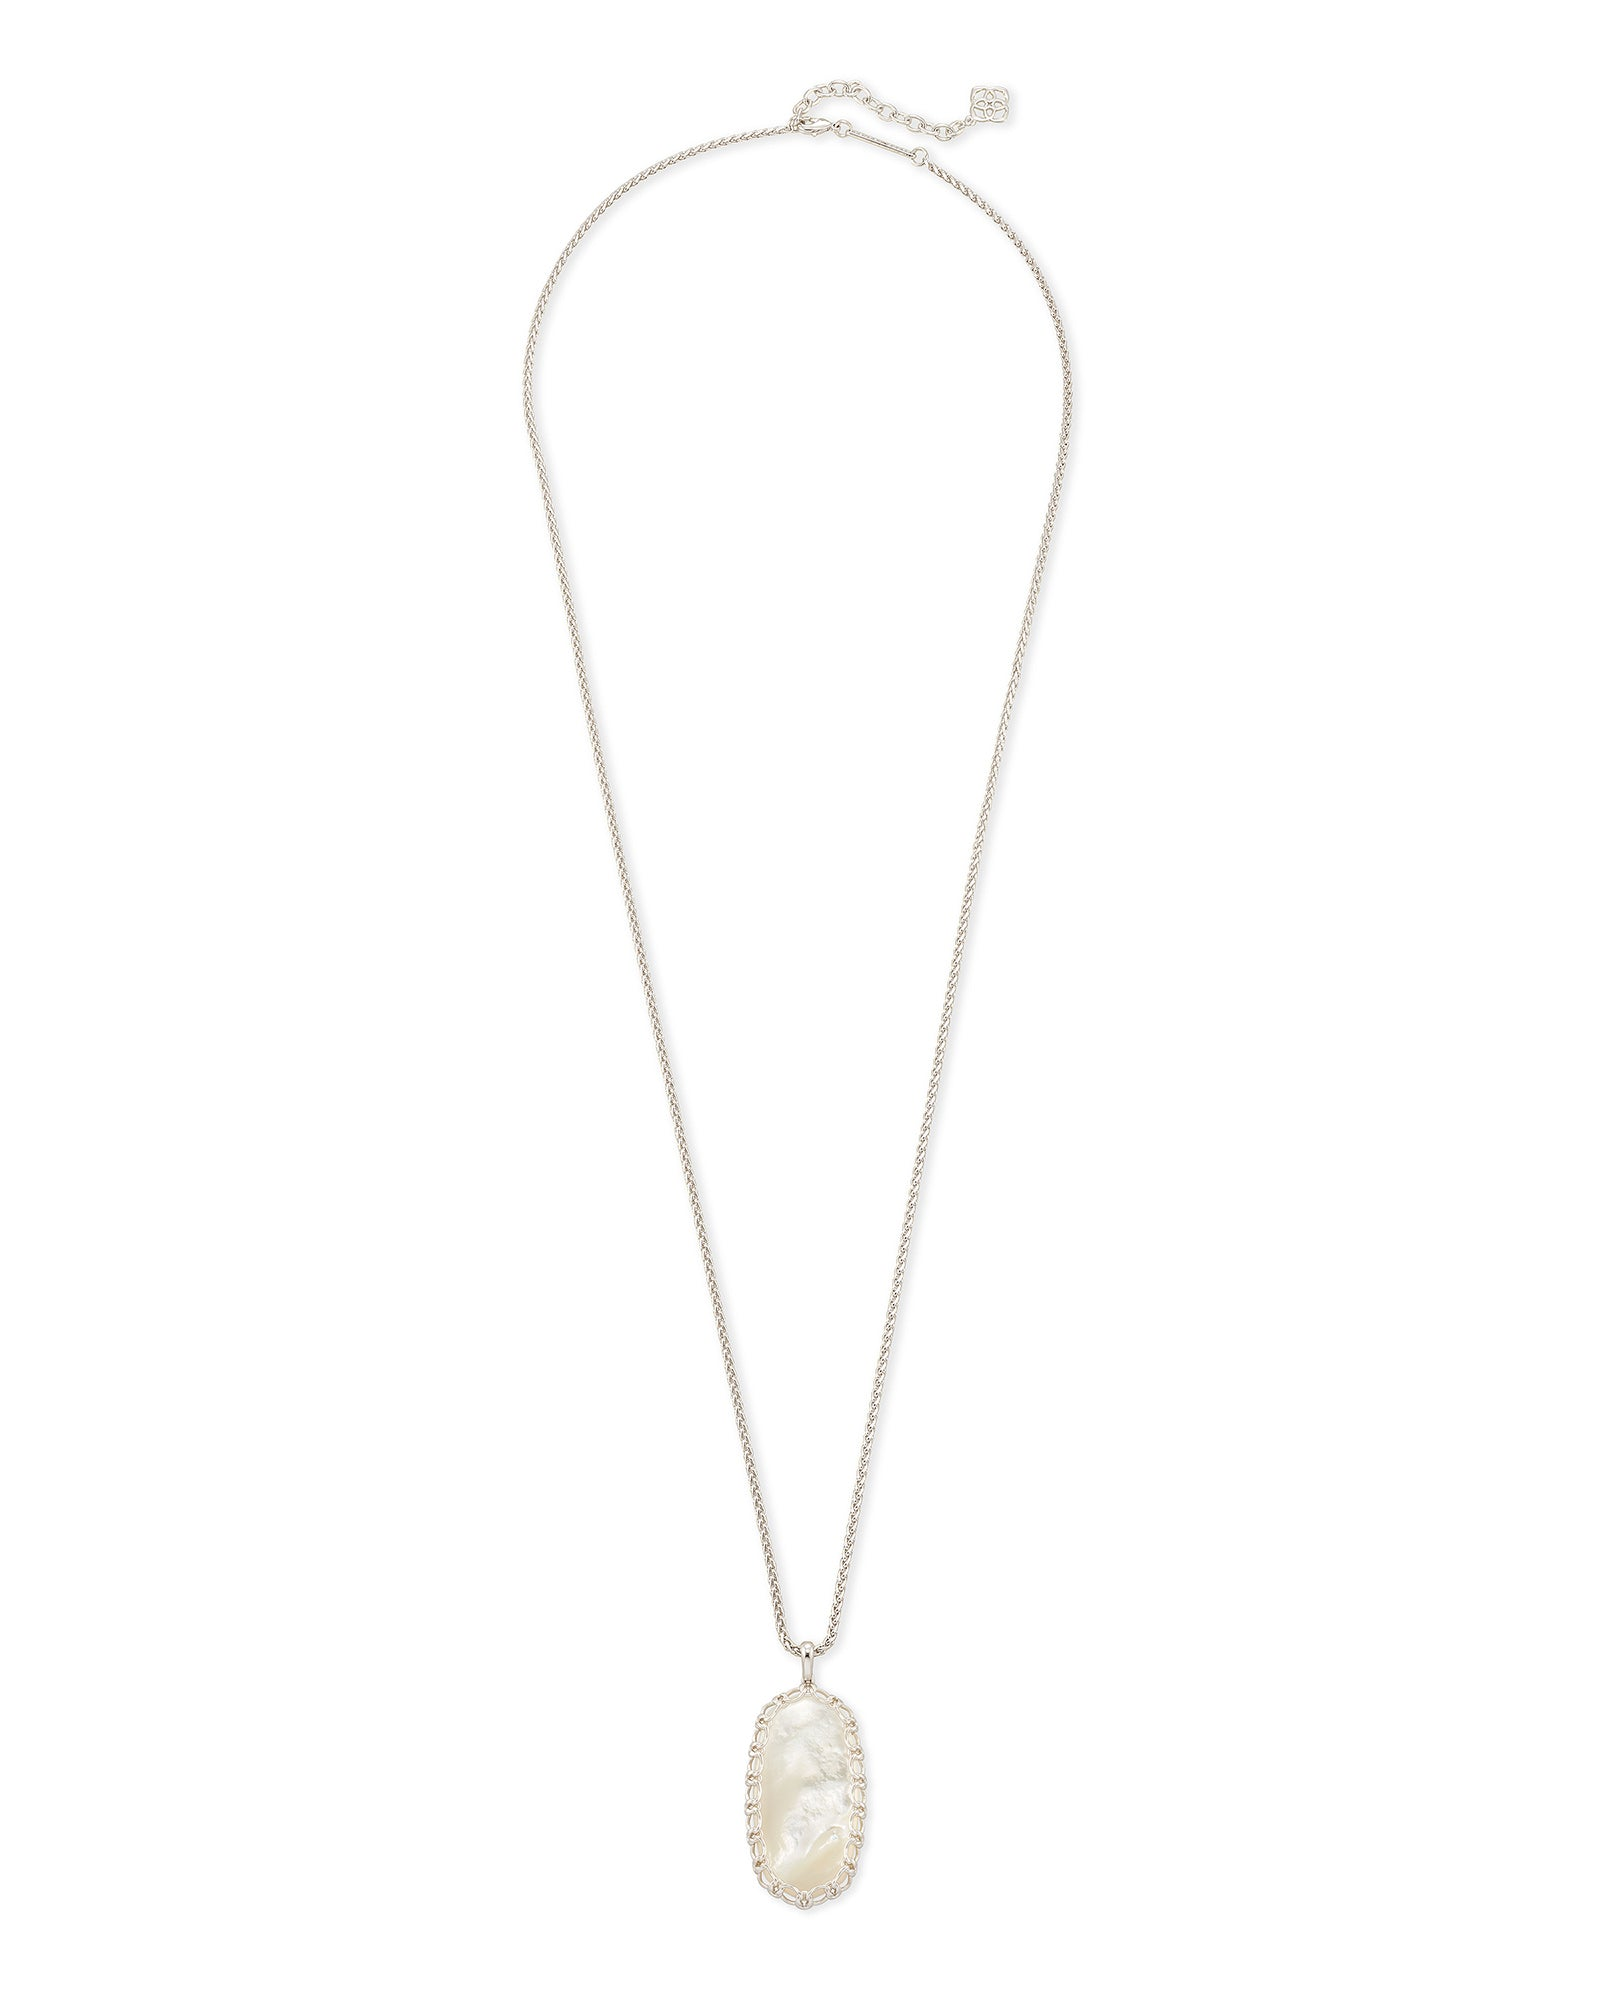 Macrame Reid Rhodium Necklace in Ivory Mother Of Pearl